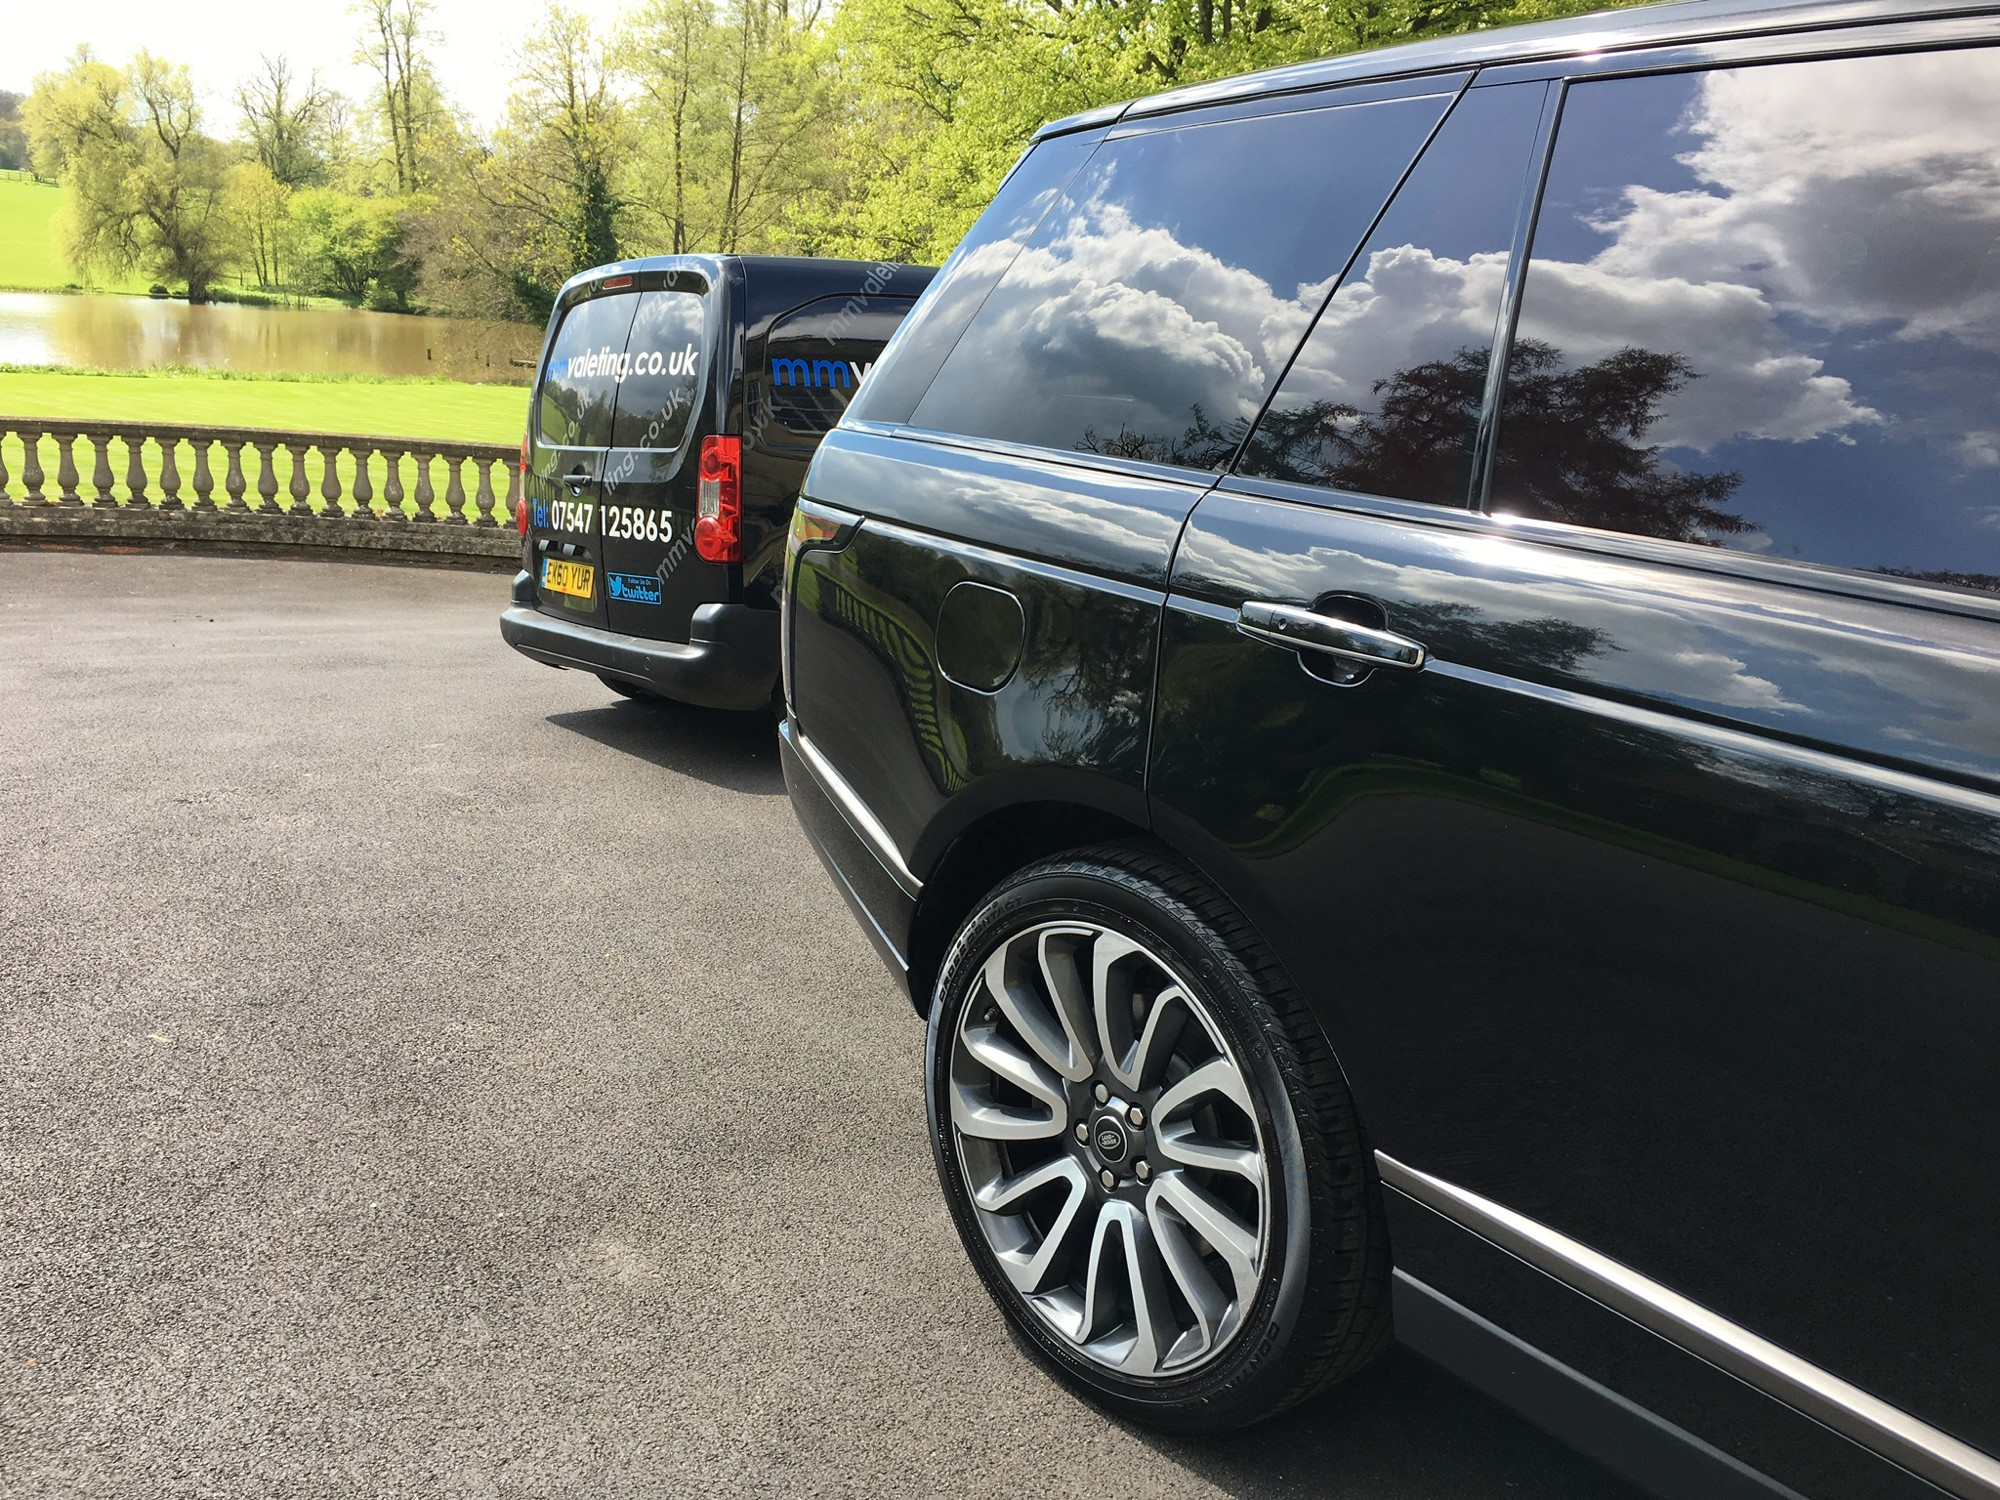 Machine polishing is an effective way of restoring your vehicles paintwork to its former glory. Contact mmvaleting about machine polishing your vehicle in Buckinhghamshire.